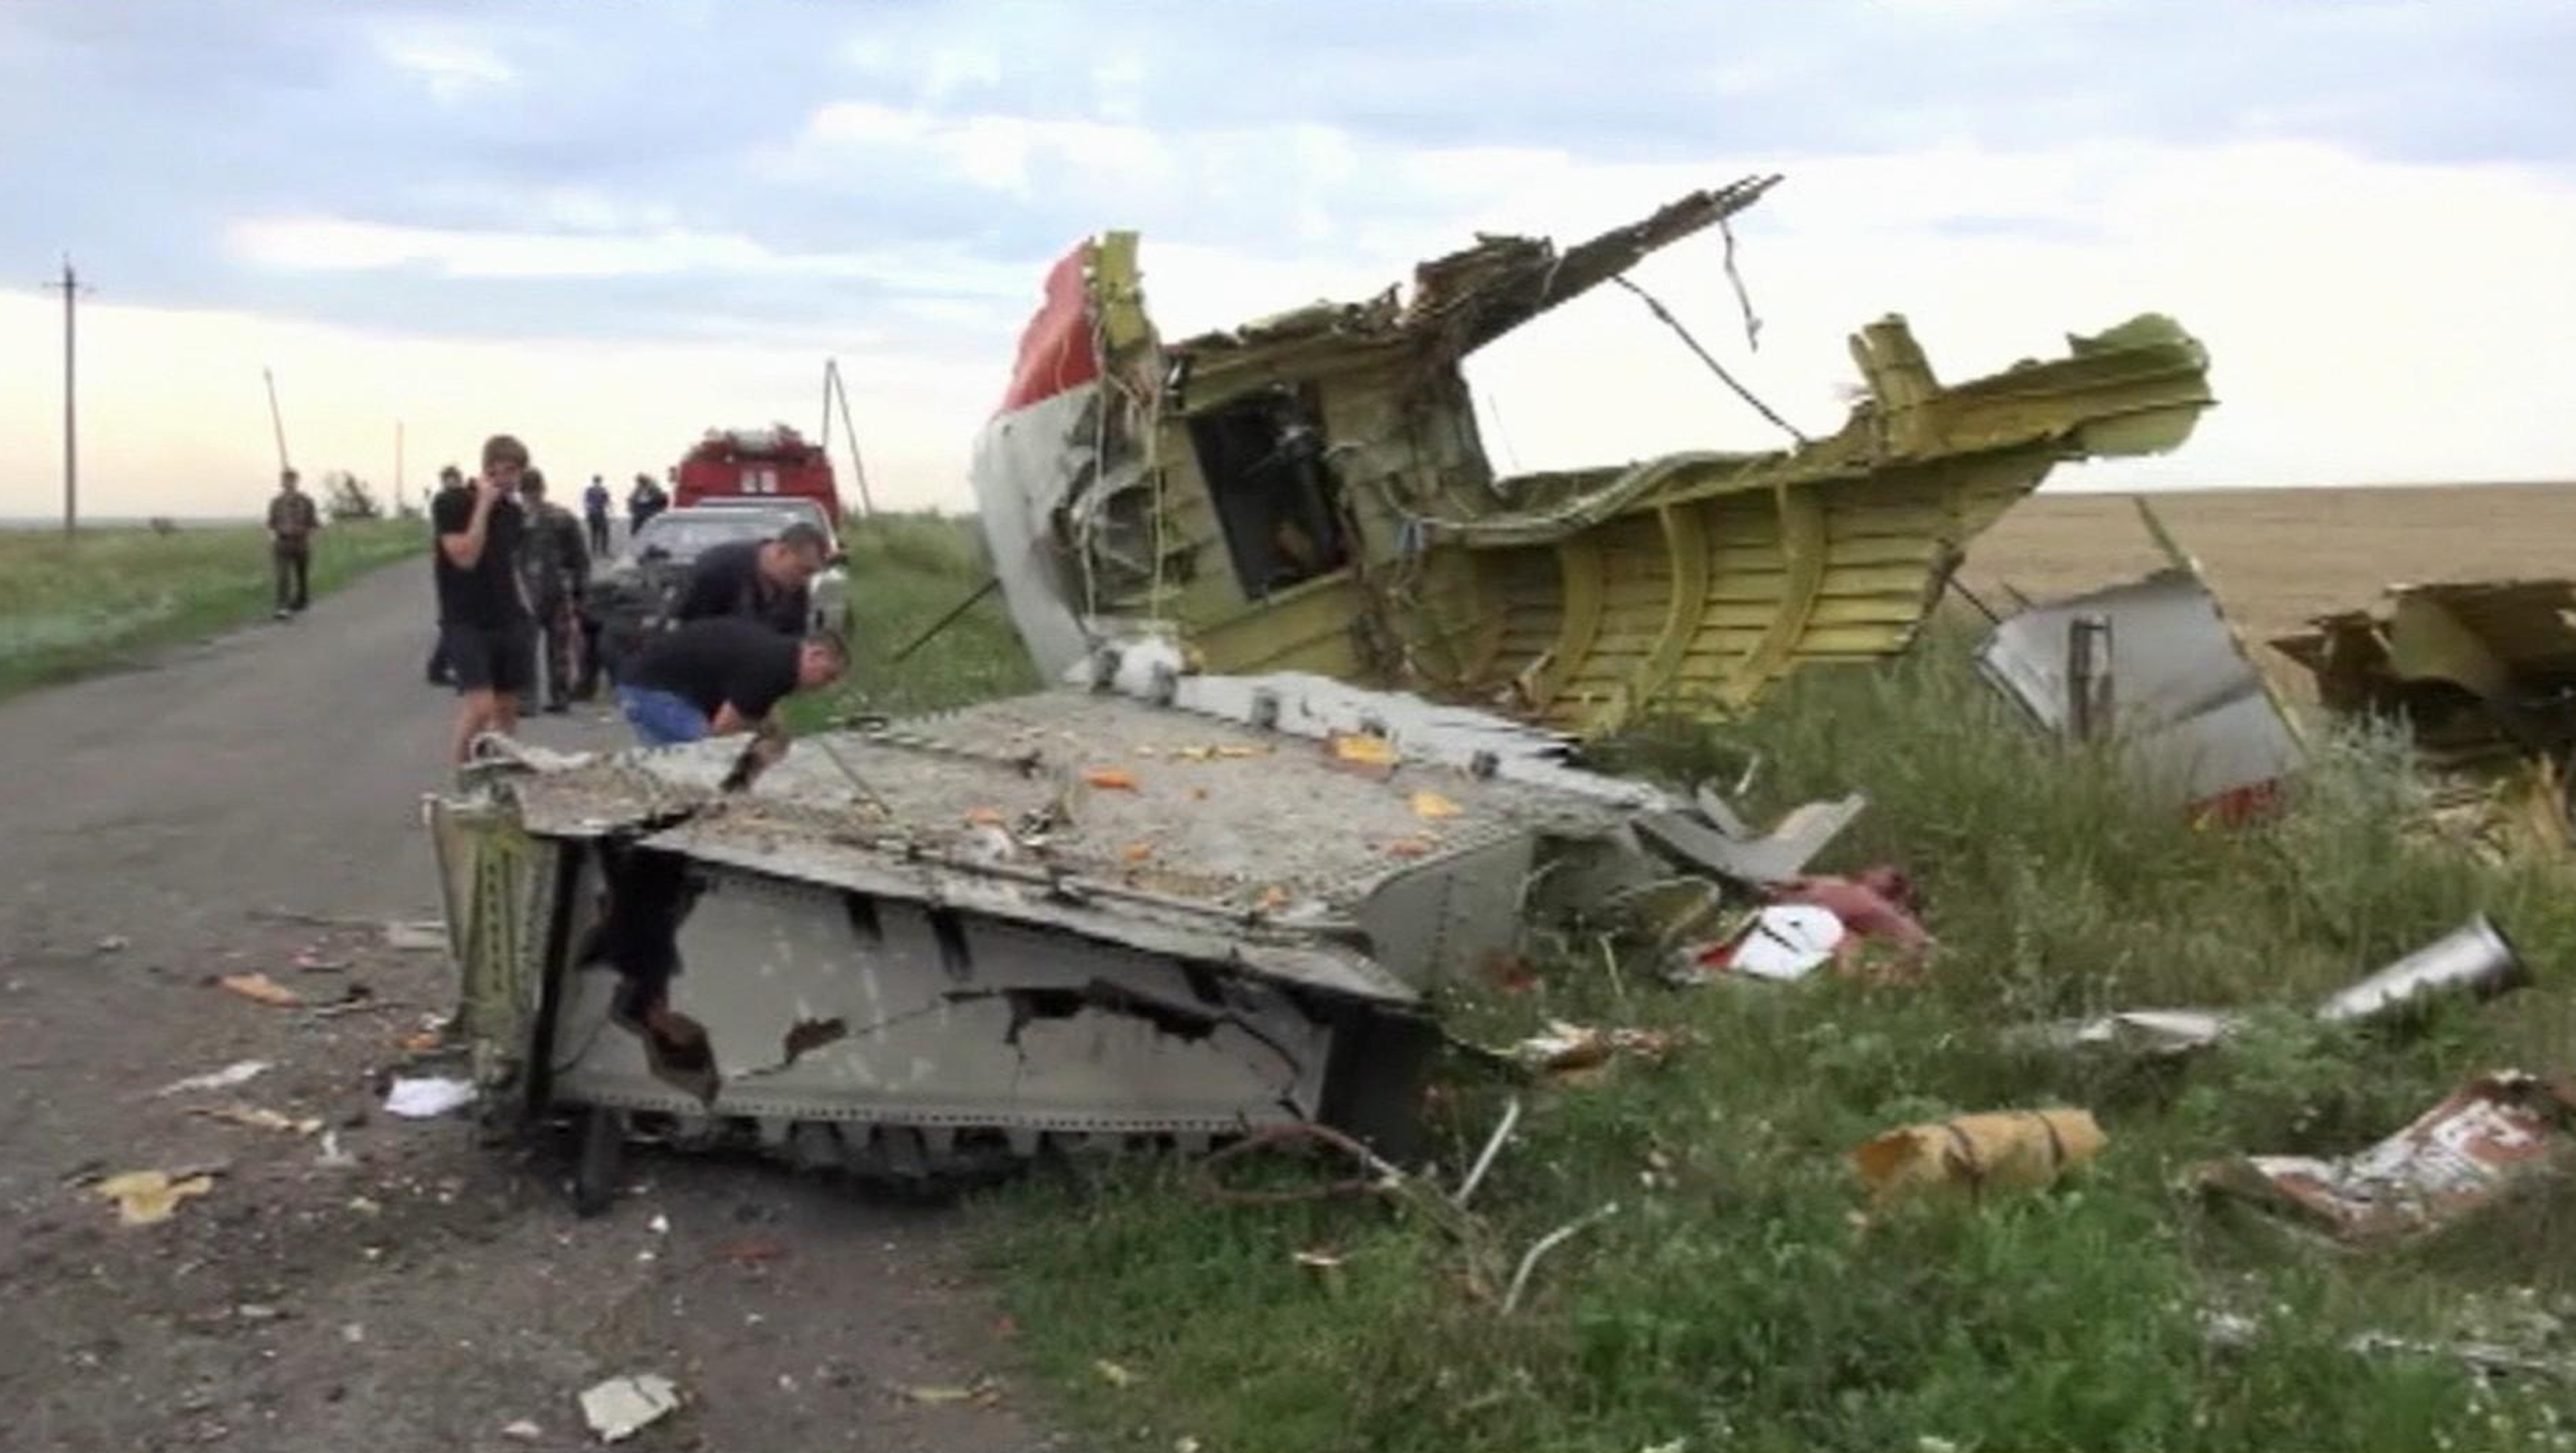 In this image taken from video, Thursday July 17, 2014, showing part of the wreckage of a passenger plane carrying 295 people after it was shot down Thursday as it flew over Ukraine, near the village of Hrabove, in eastern Ukraine. (Photo: